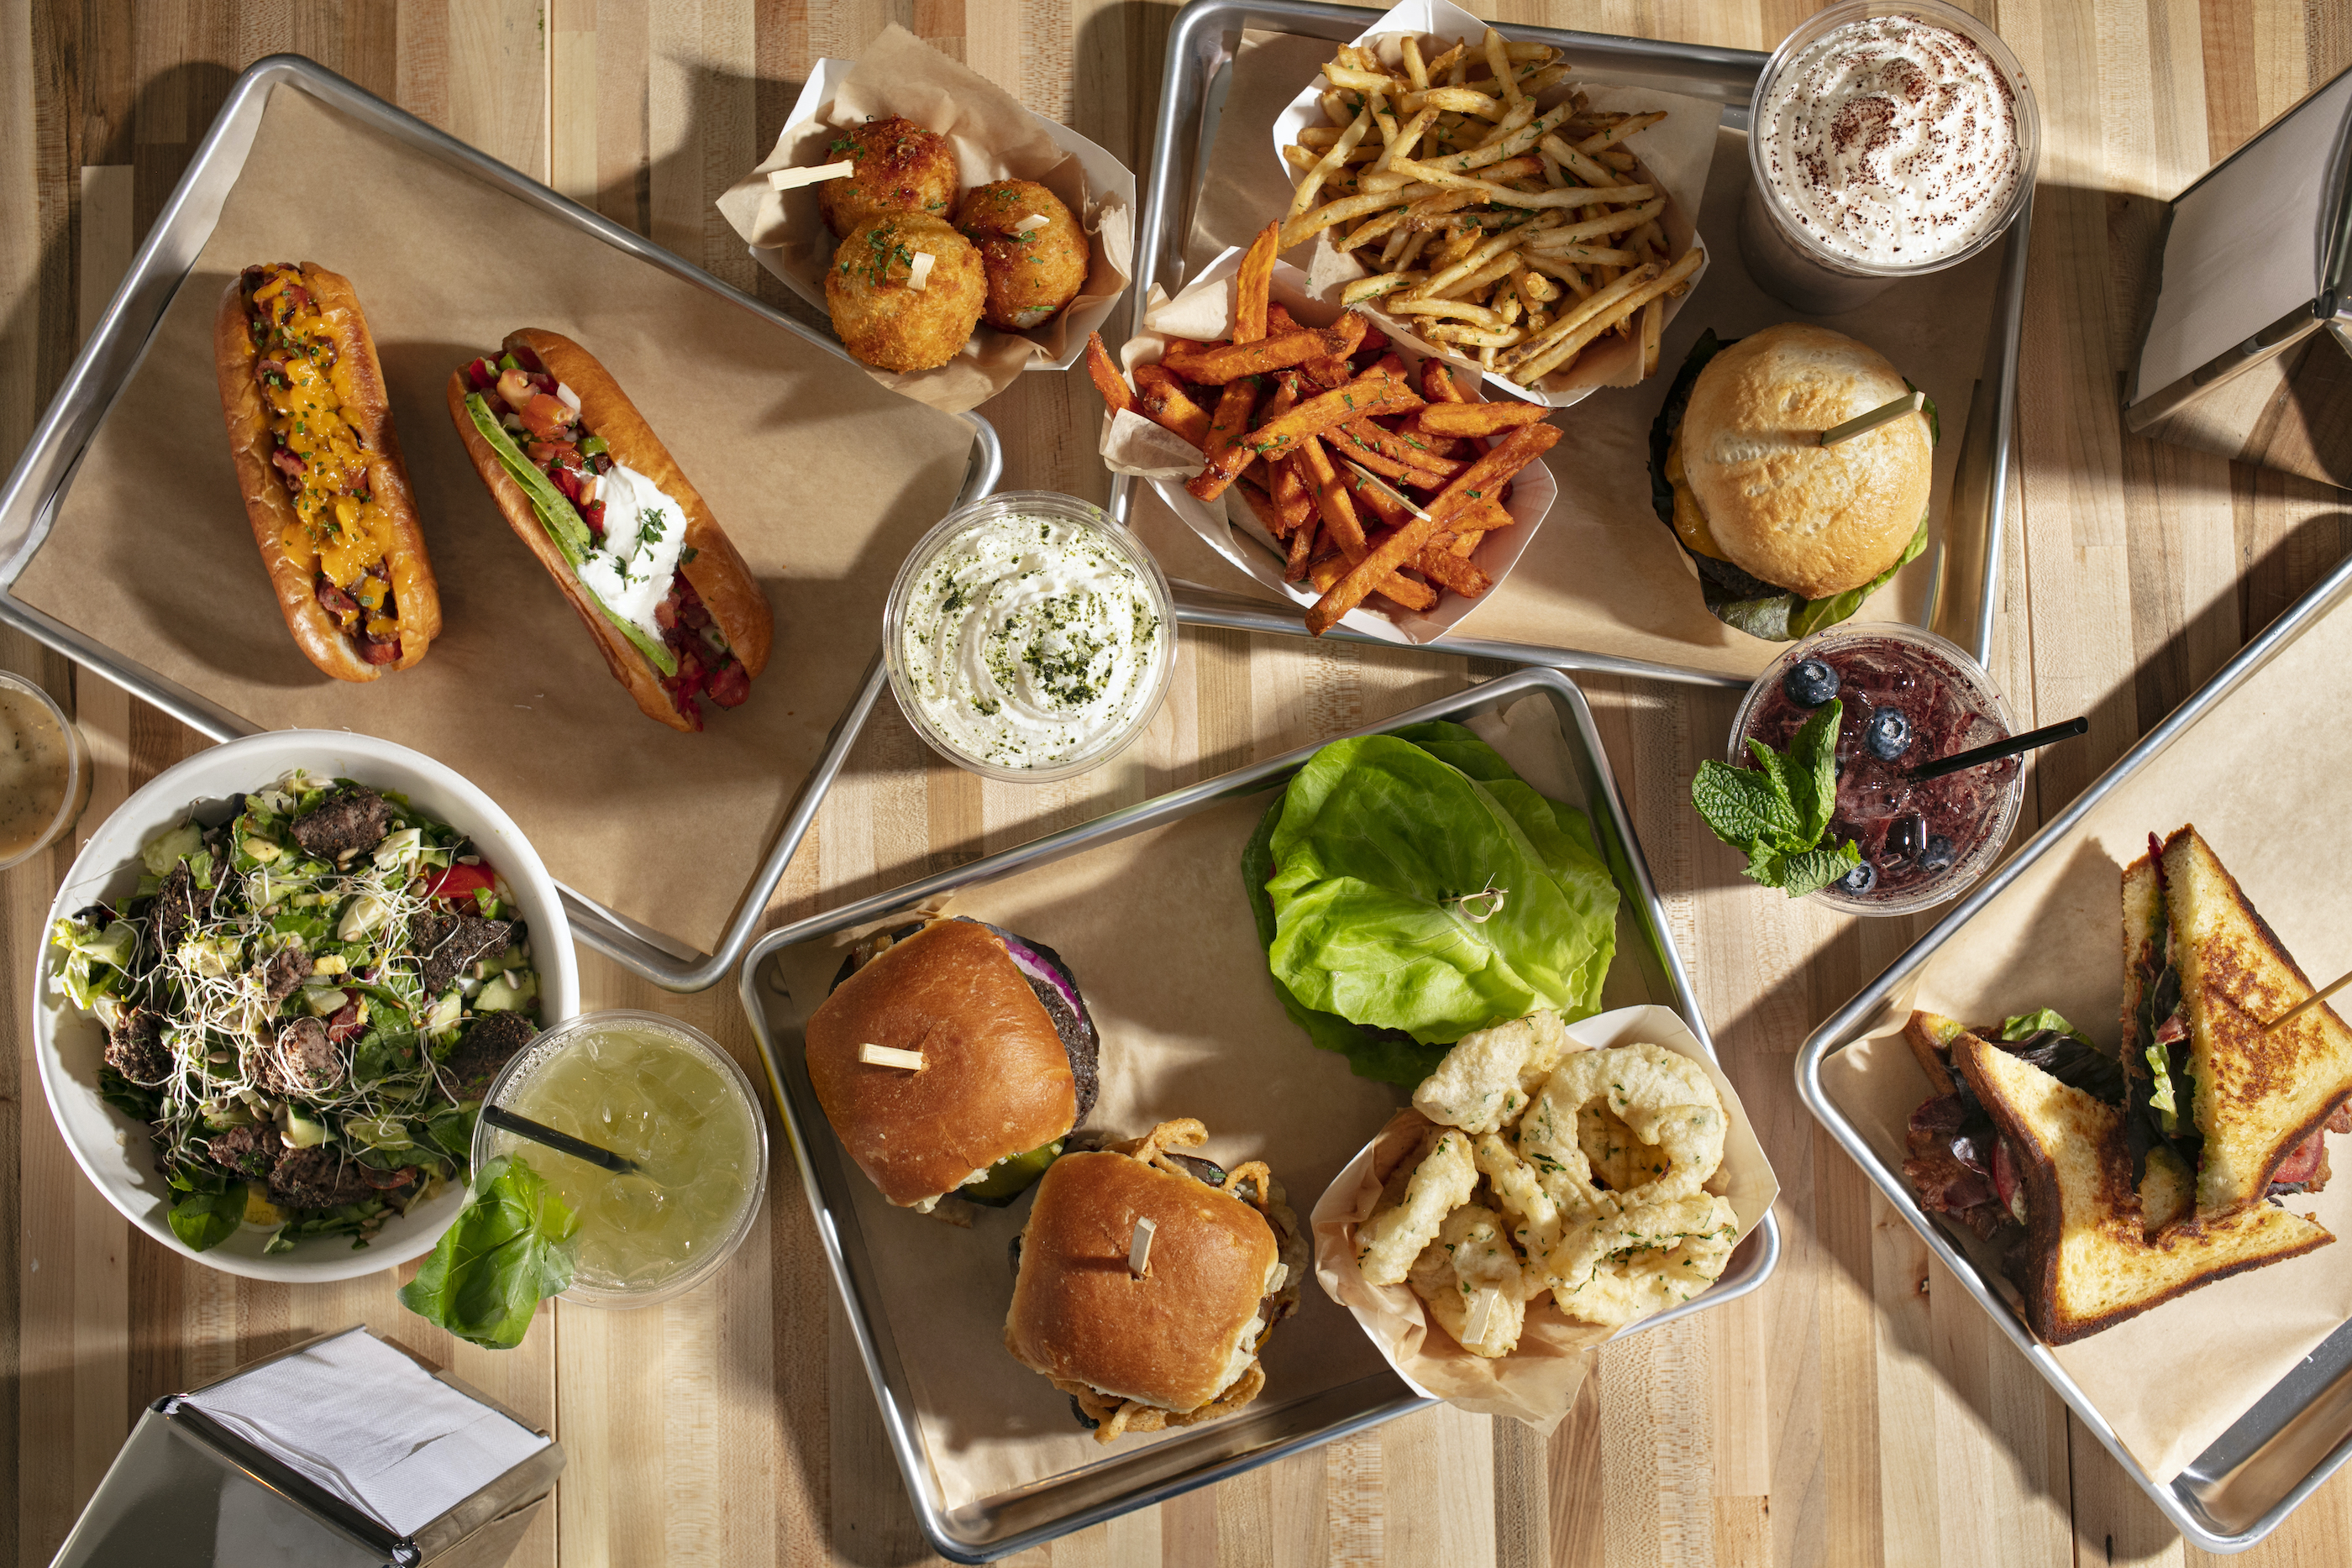 An overhead photograph of metal trays lined with food, including hot dogs, salads, burgers, onion rings, and fries